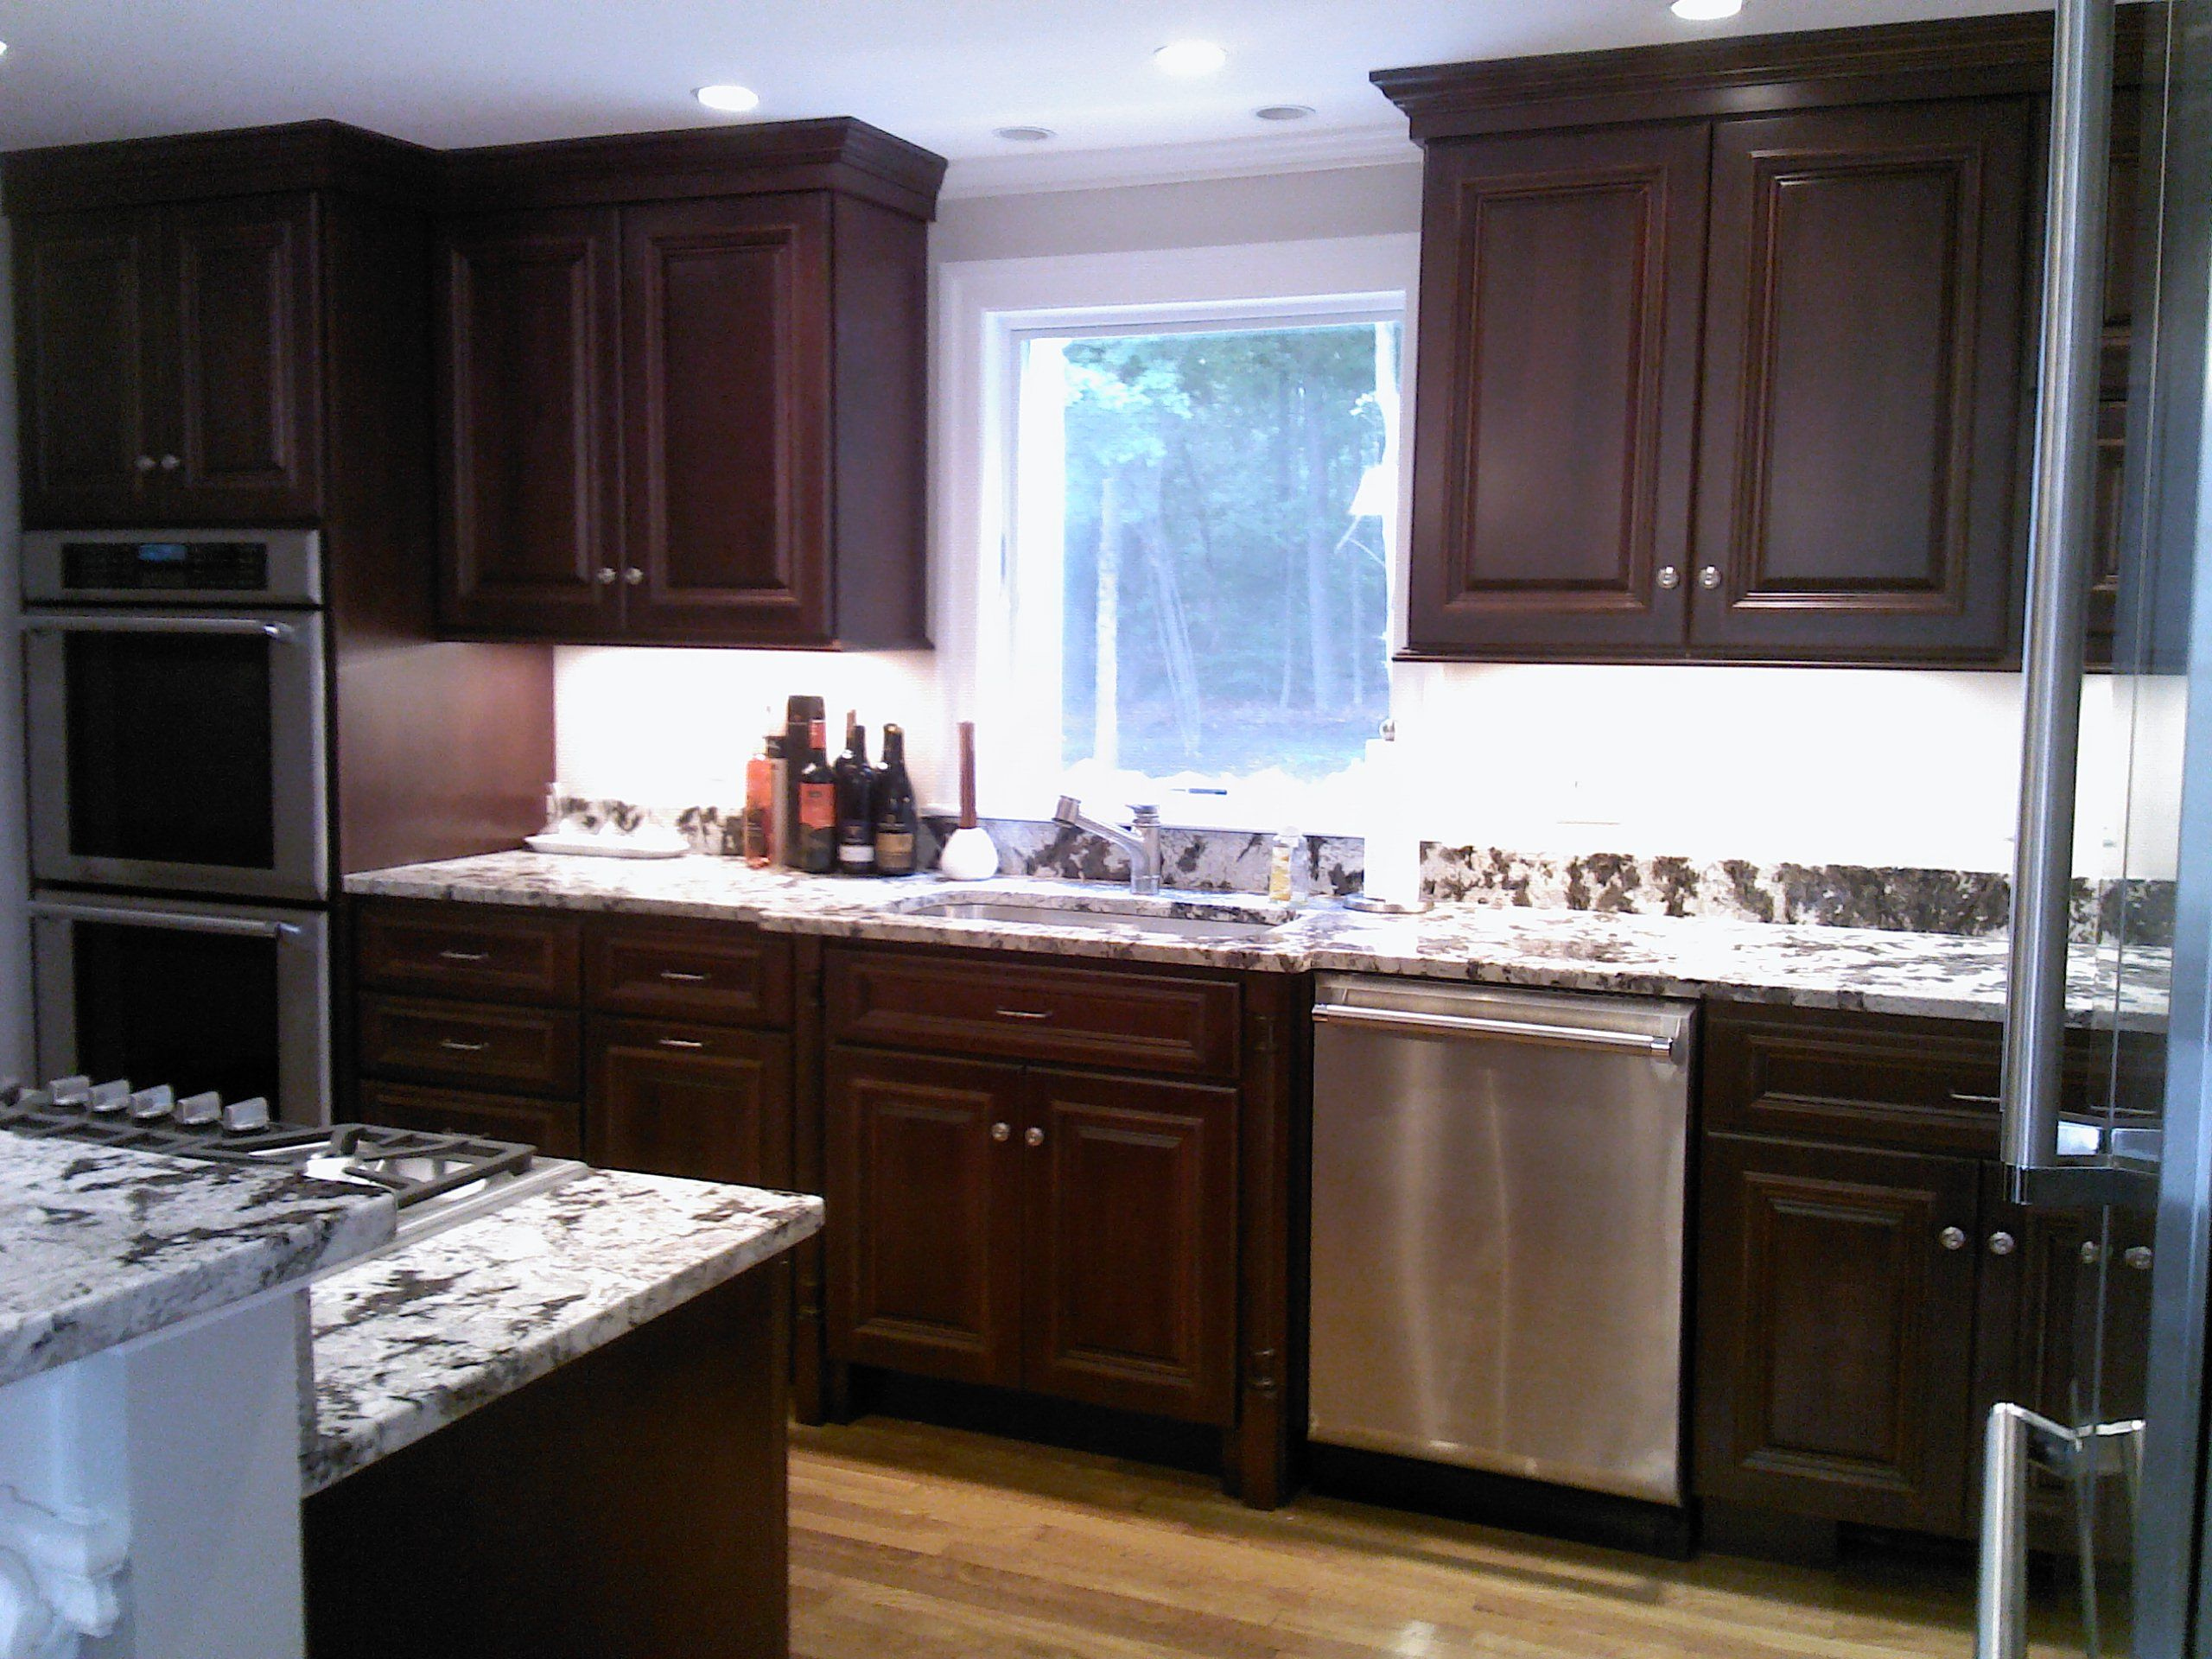 Kitchen Remodel Before After 7 Kitchen Remodel Before And After Kitchen Remodel Wooden Kitchen Floor